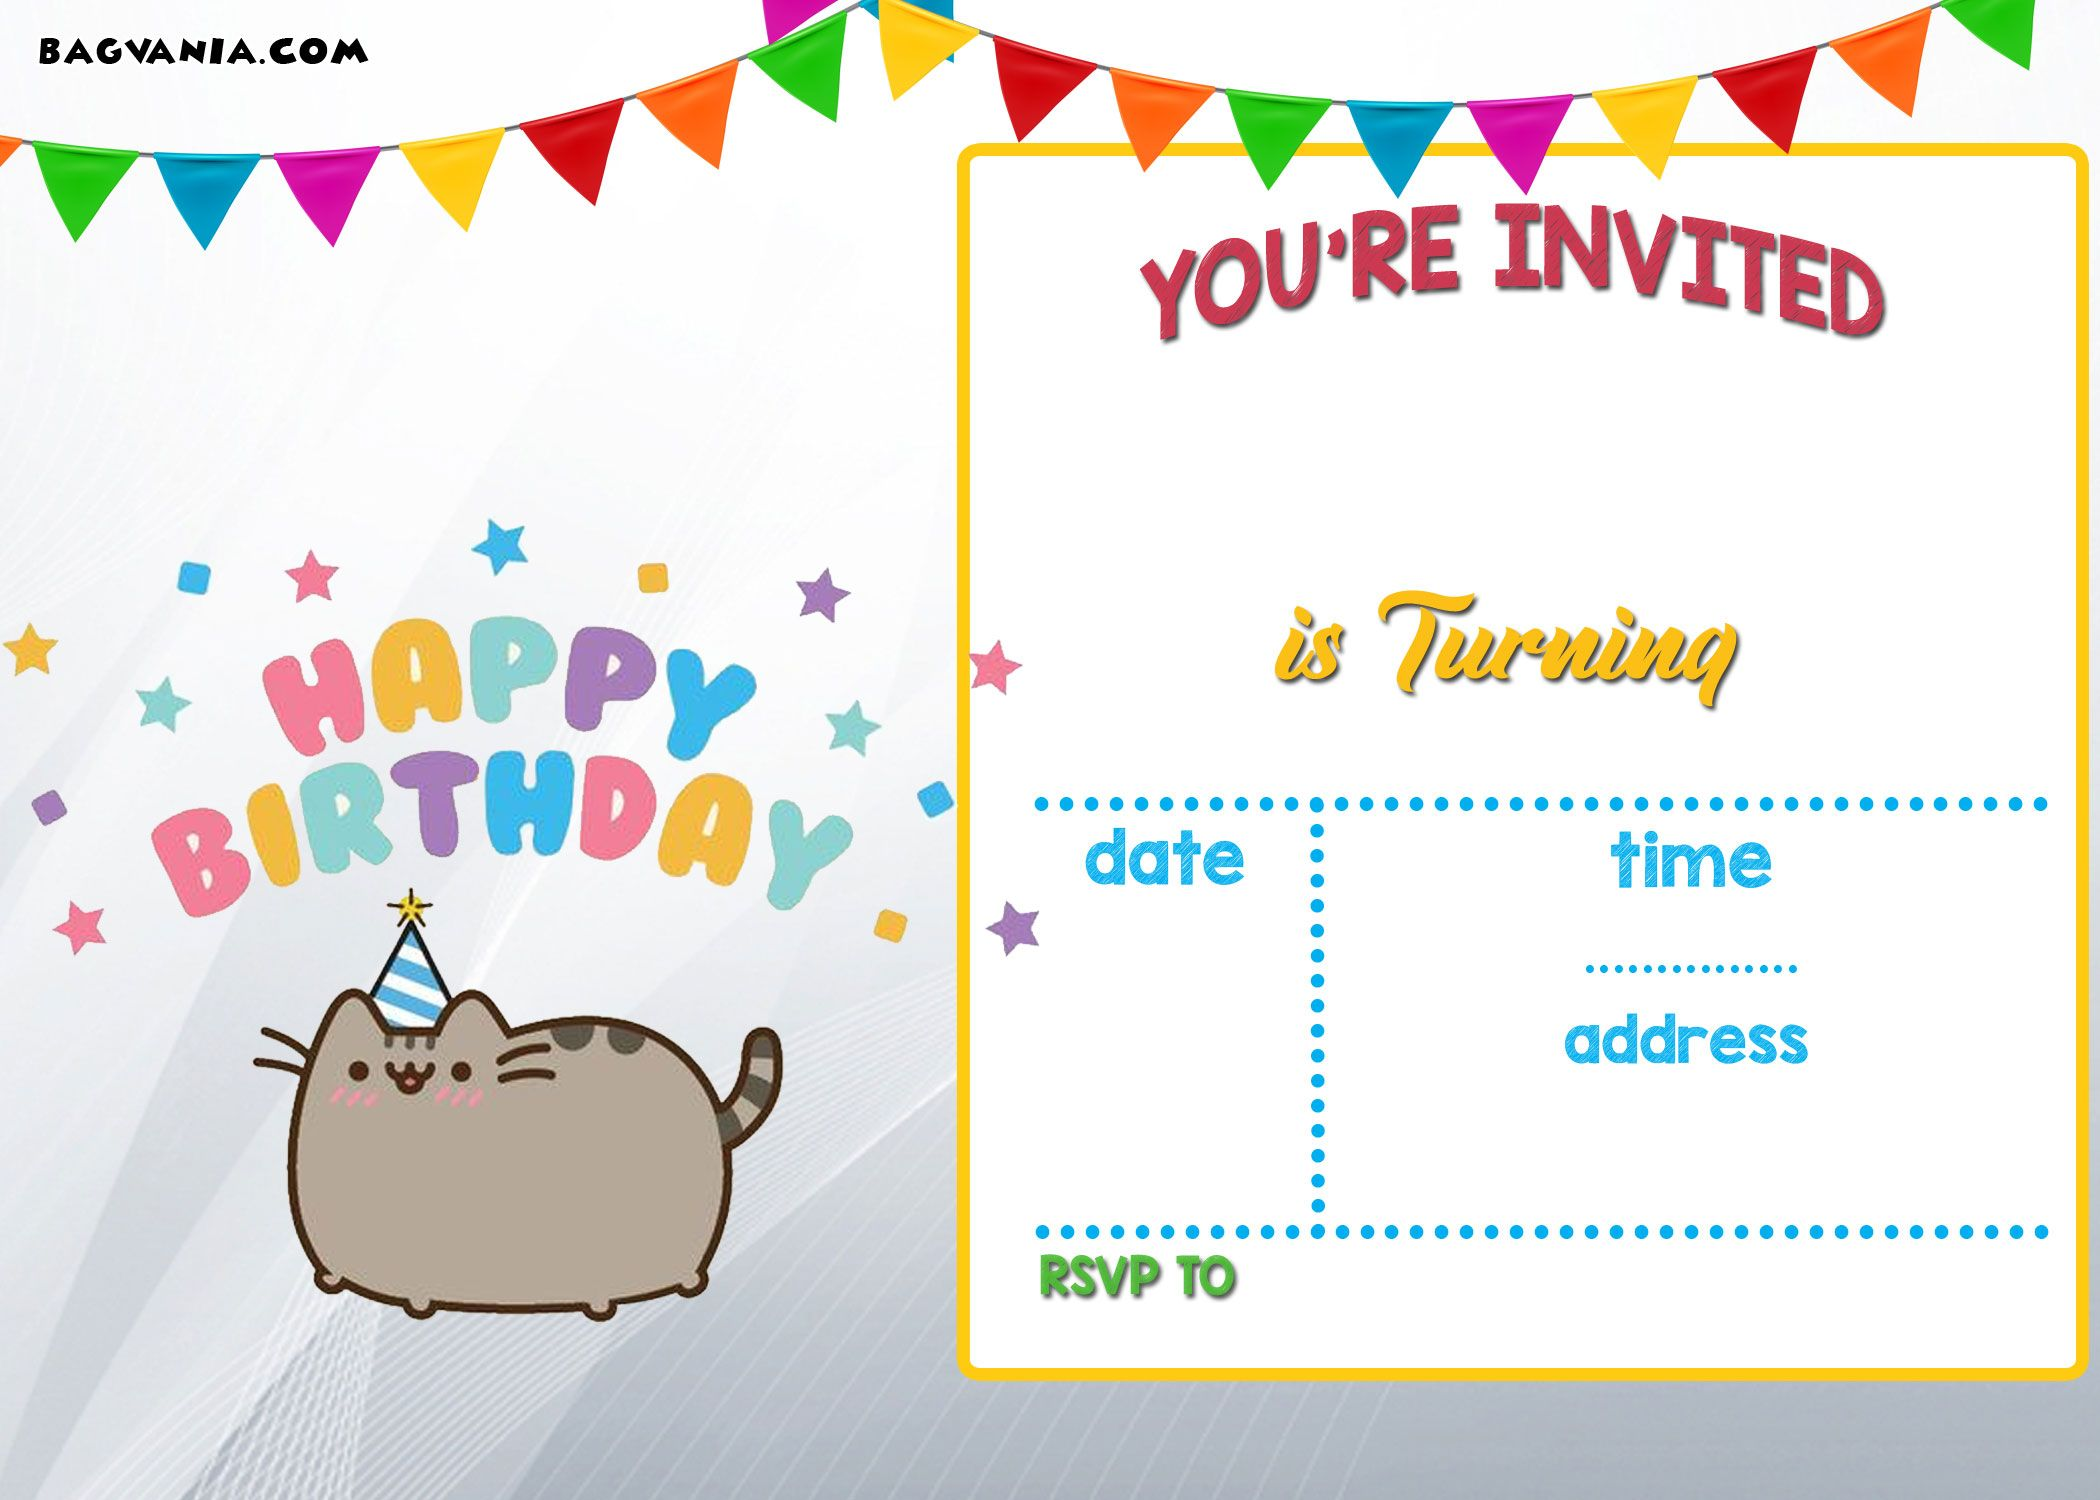 Download FREE Printable Pusheen Birthday Invitation Template - Birthday invitations templates free printable